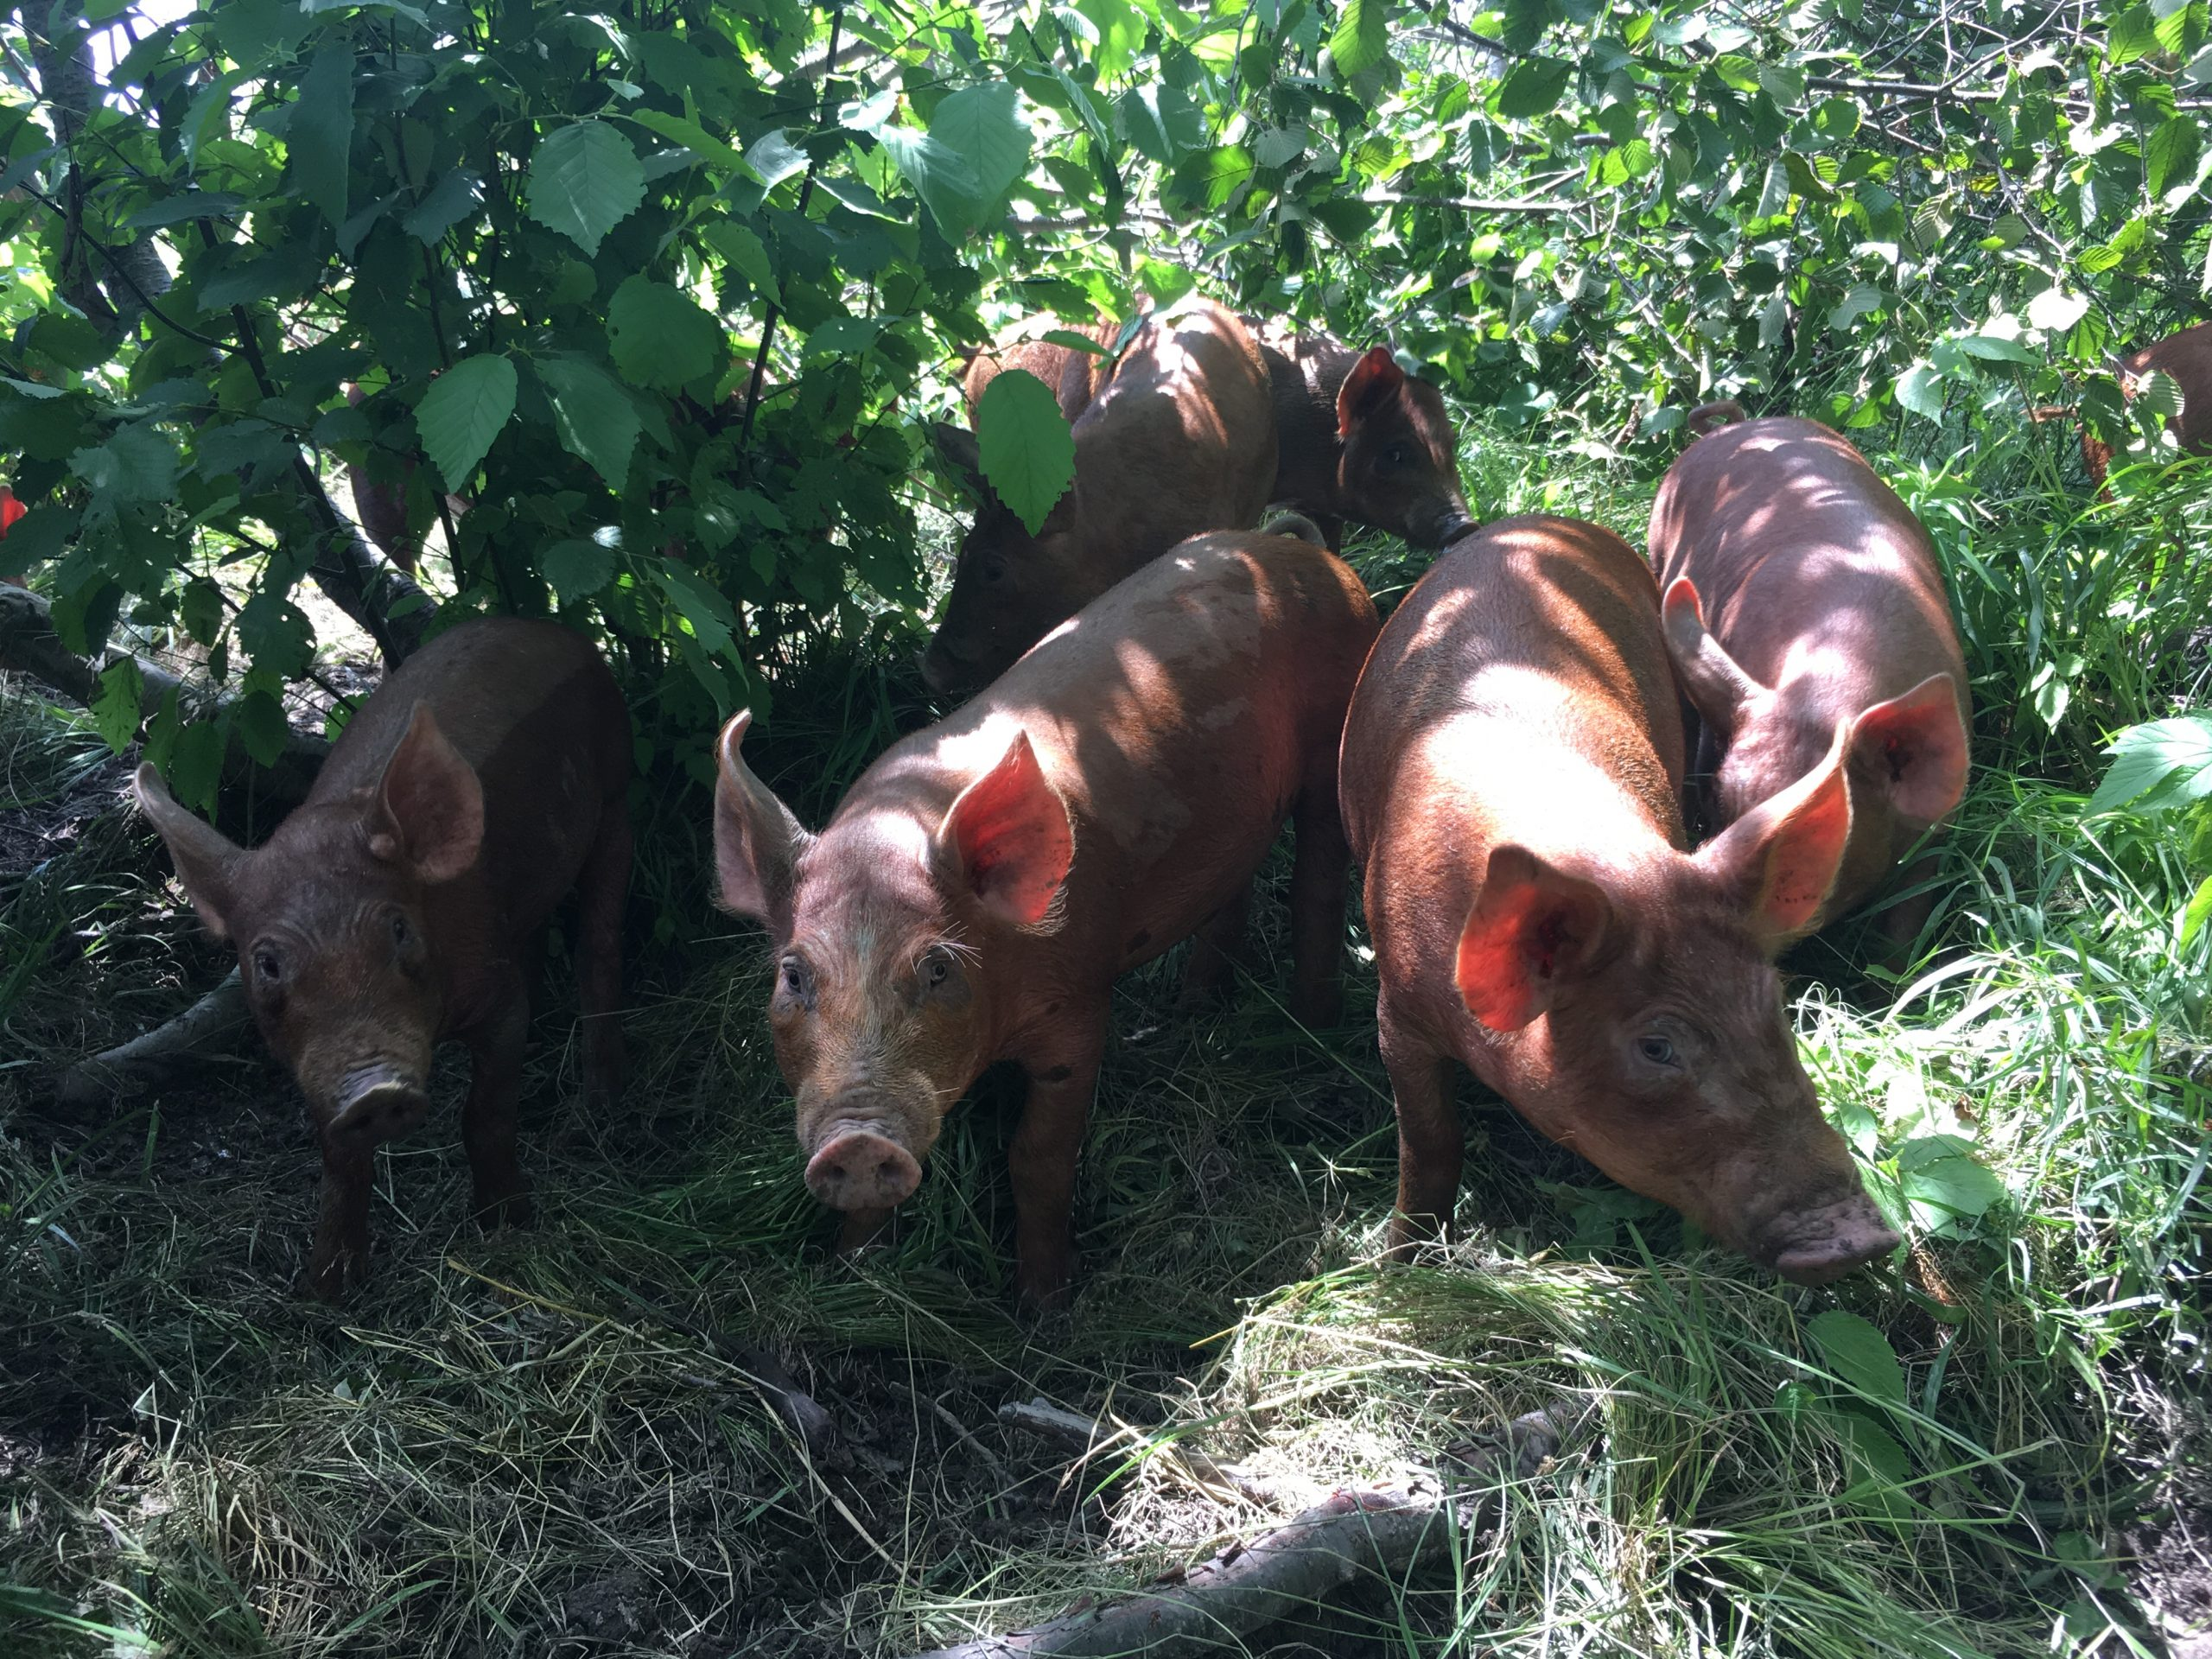 seven pigs in the grass